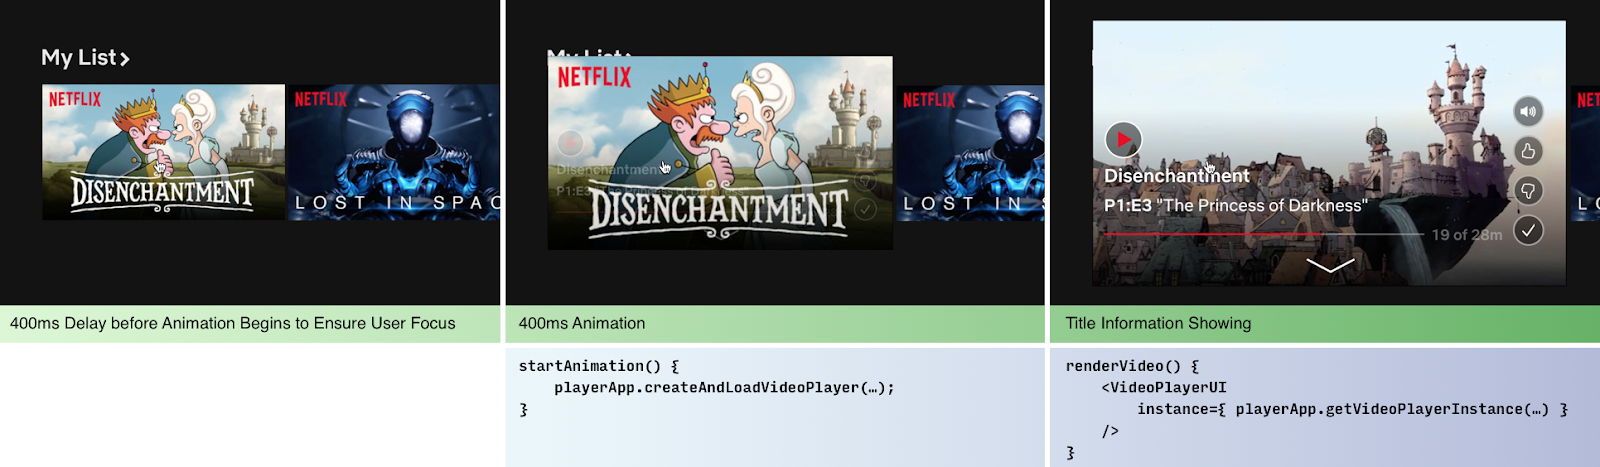 Delivering Meaning with Previews on Web - Netflix TechBlog